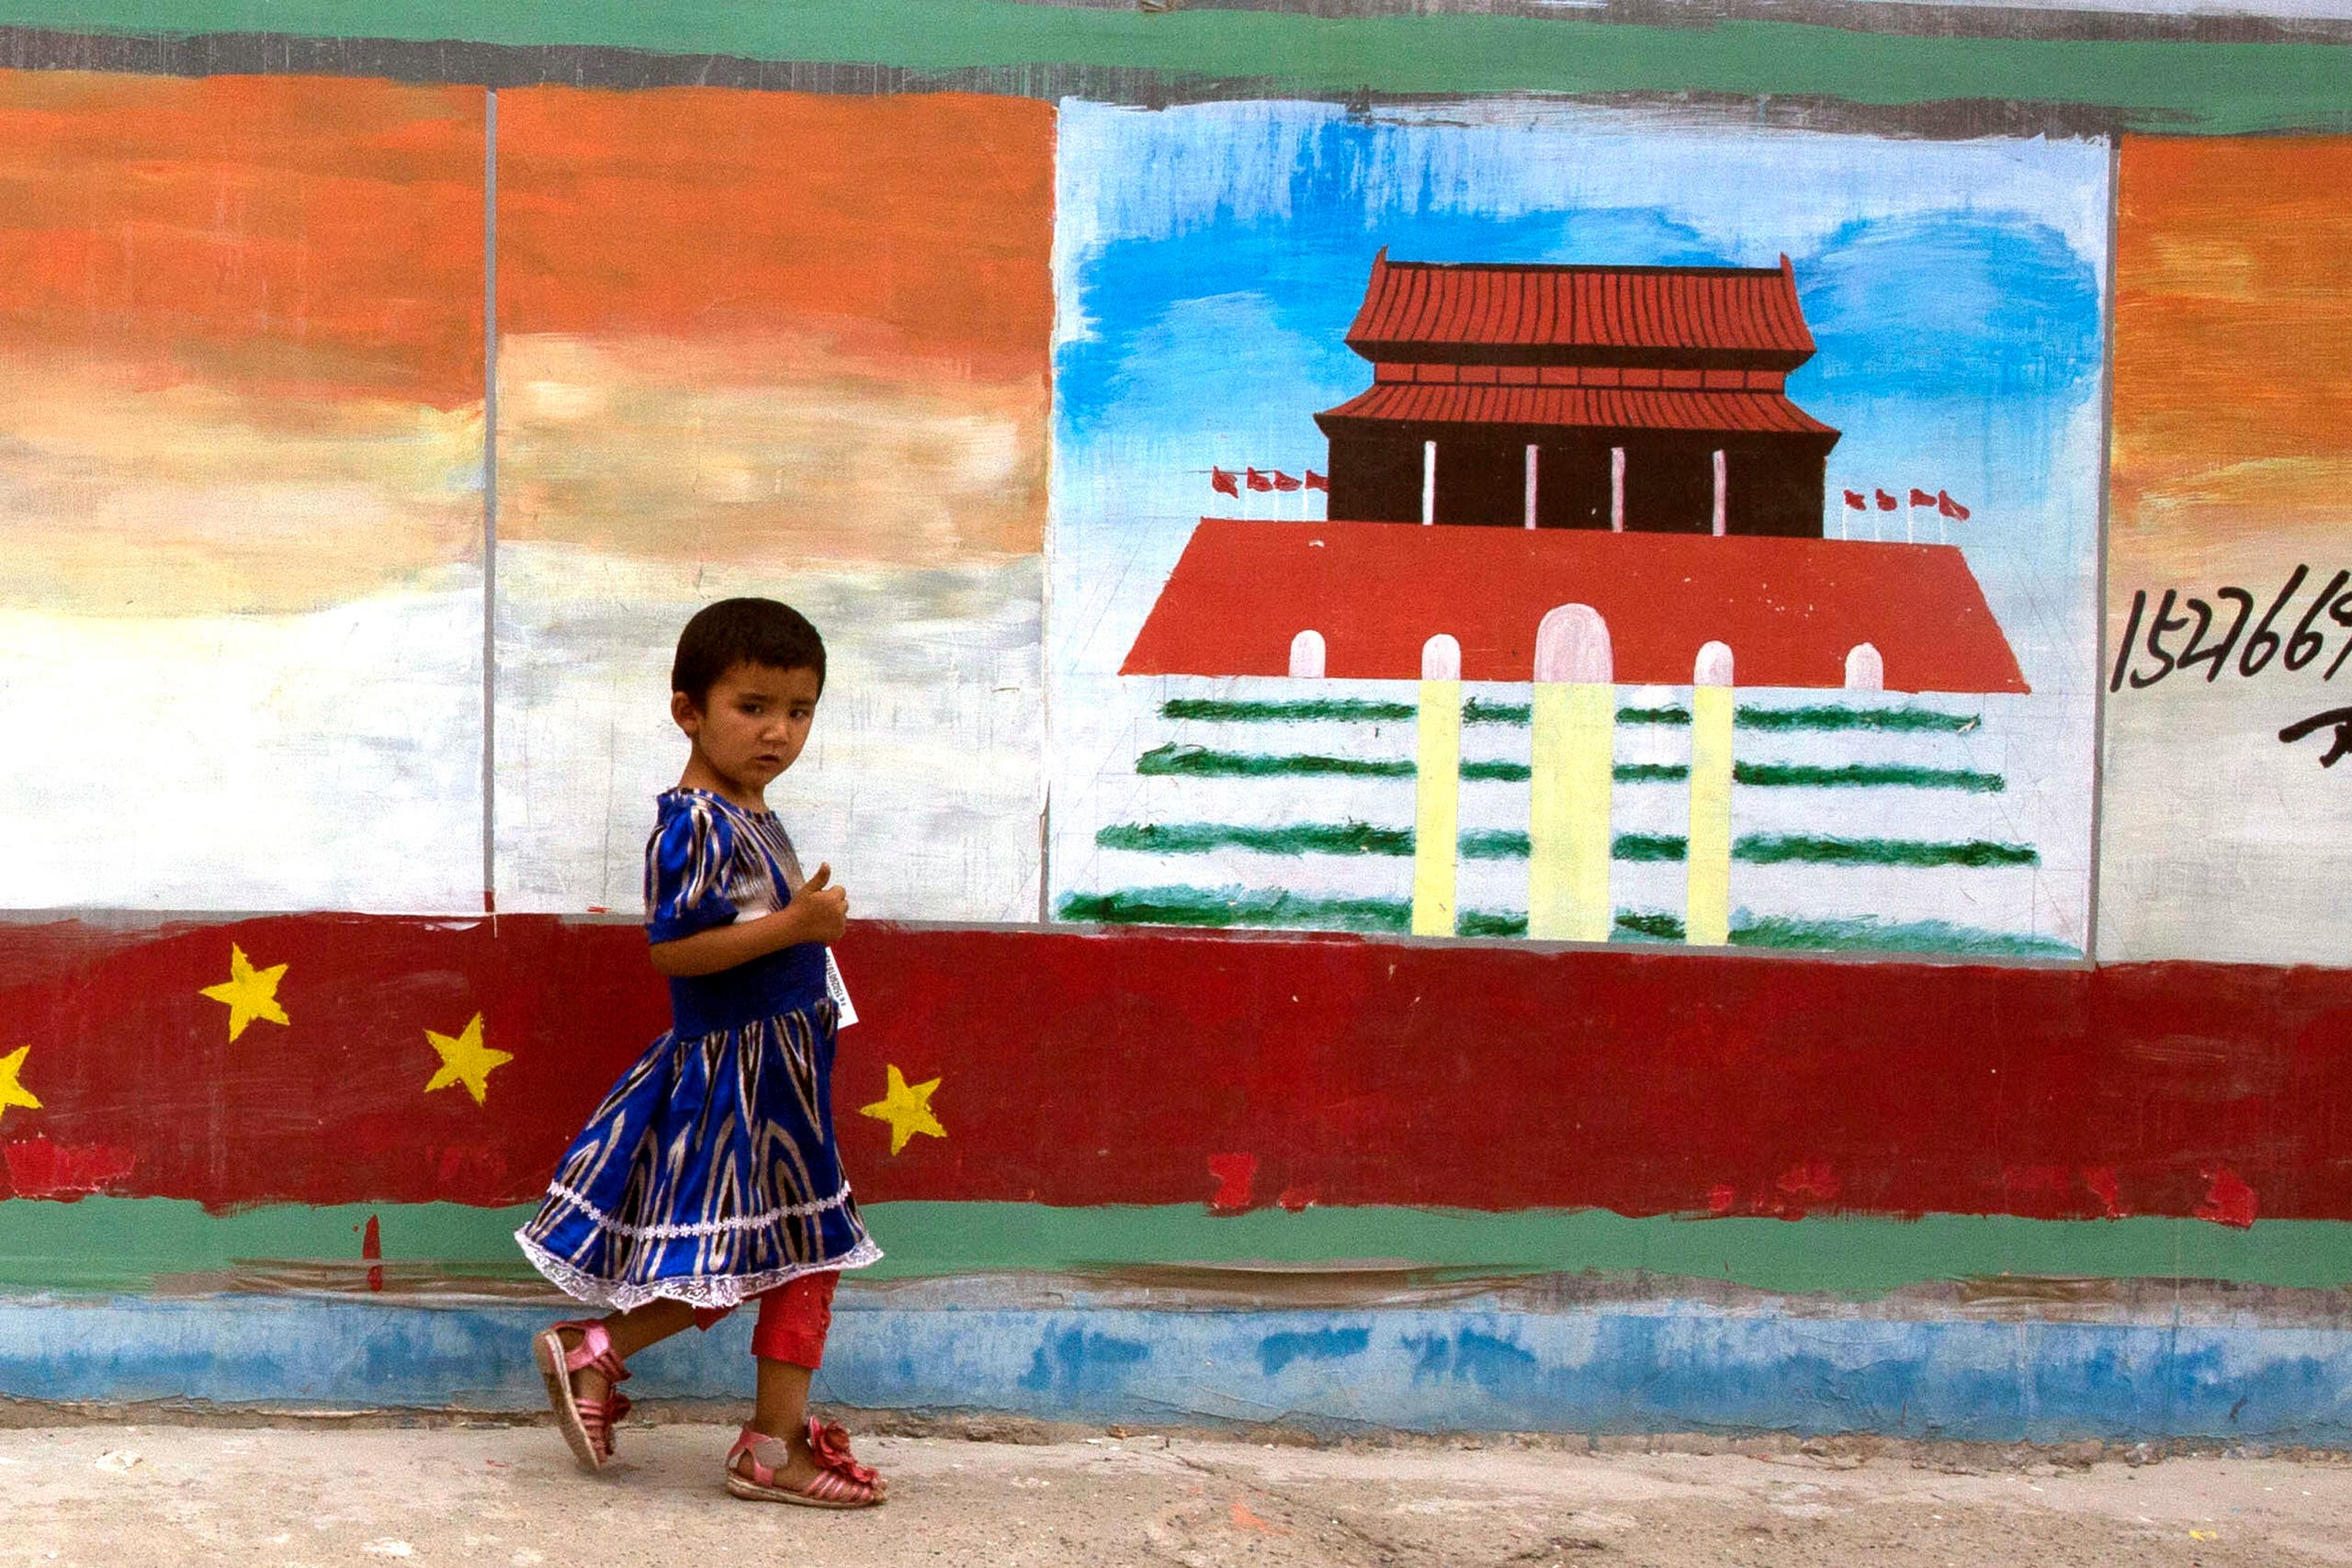 A Uighur child walks past a mural depicting China's Tiananmen Gate on the streets of Aksu in western China's Xinjiang province. (File photo: AP)